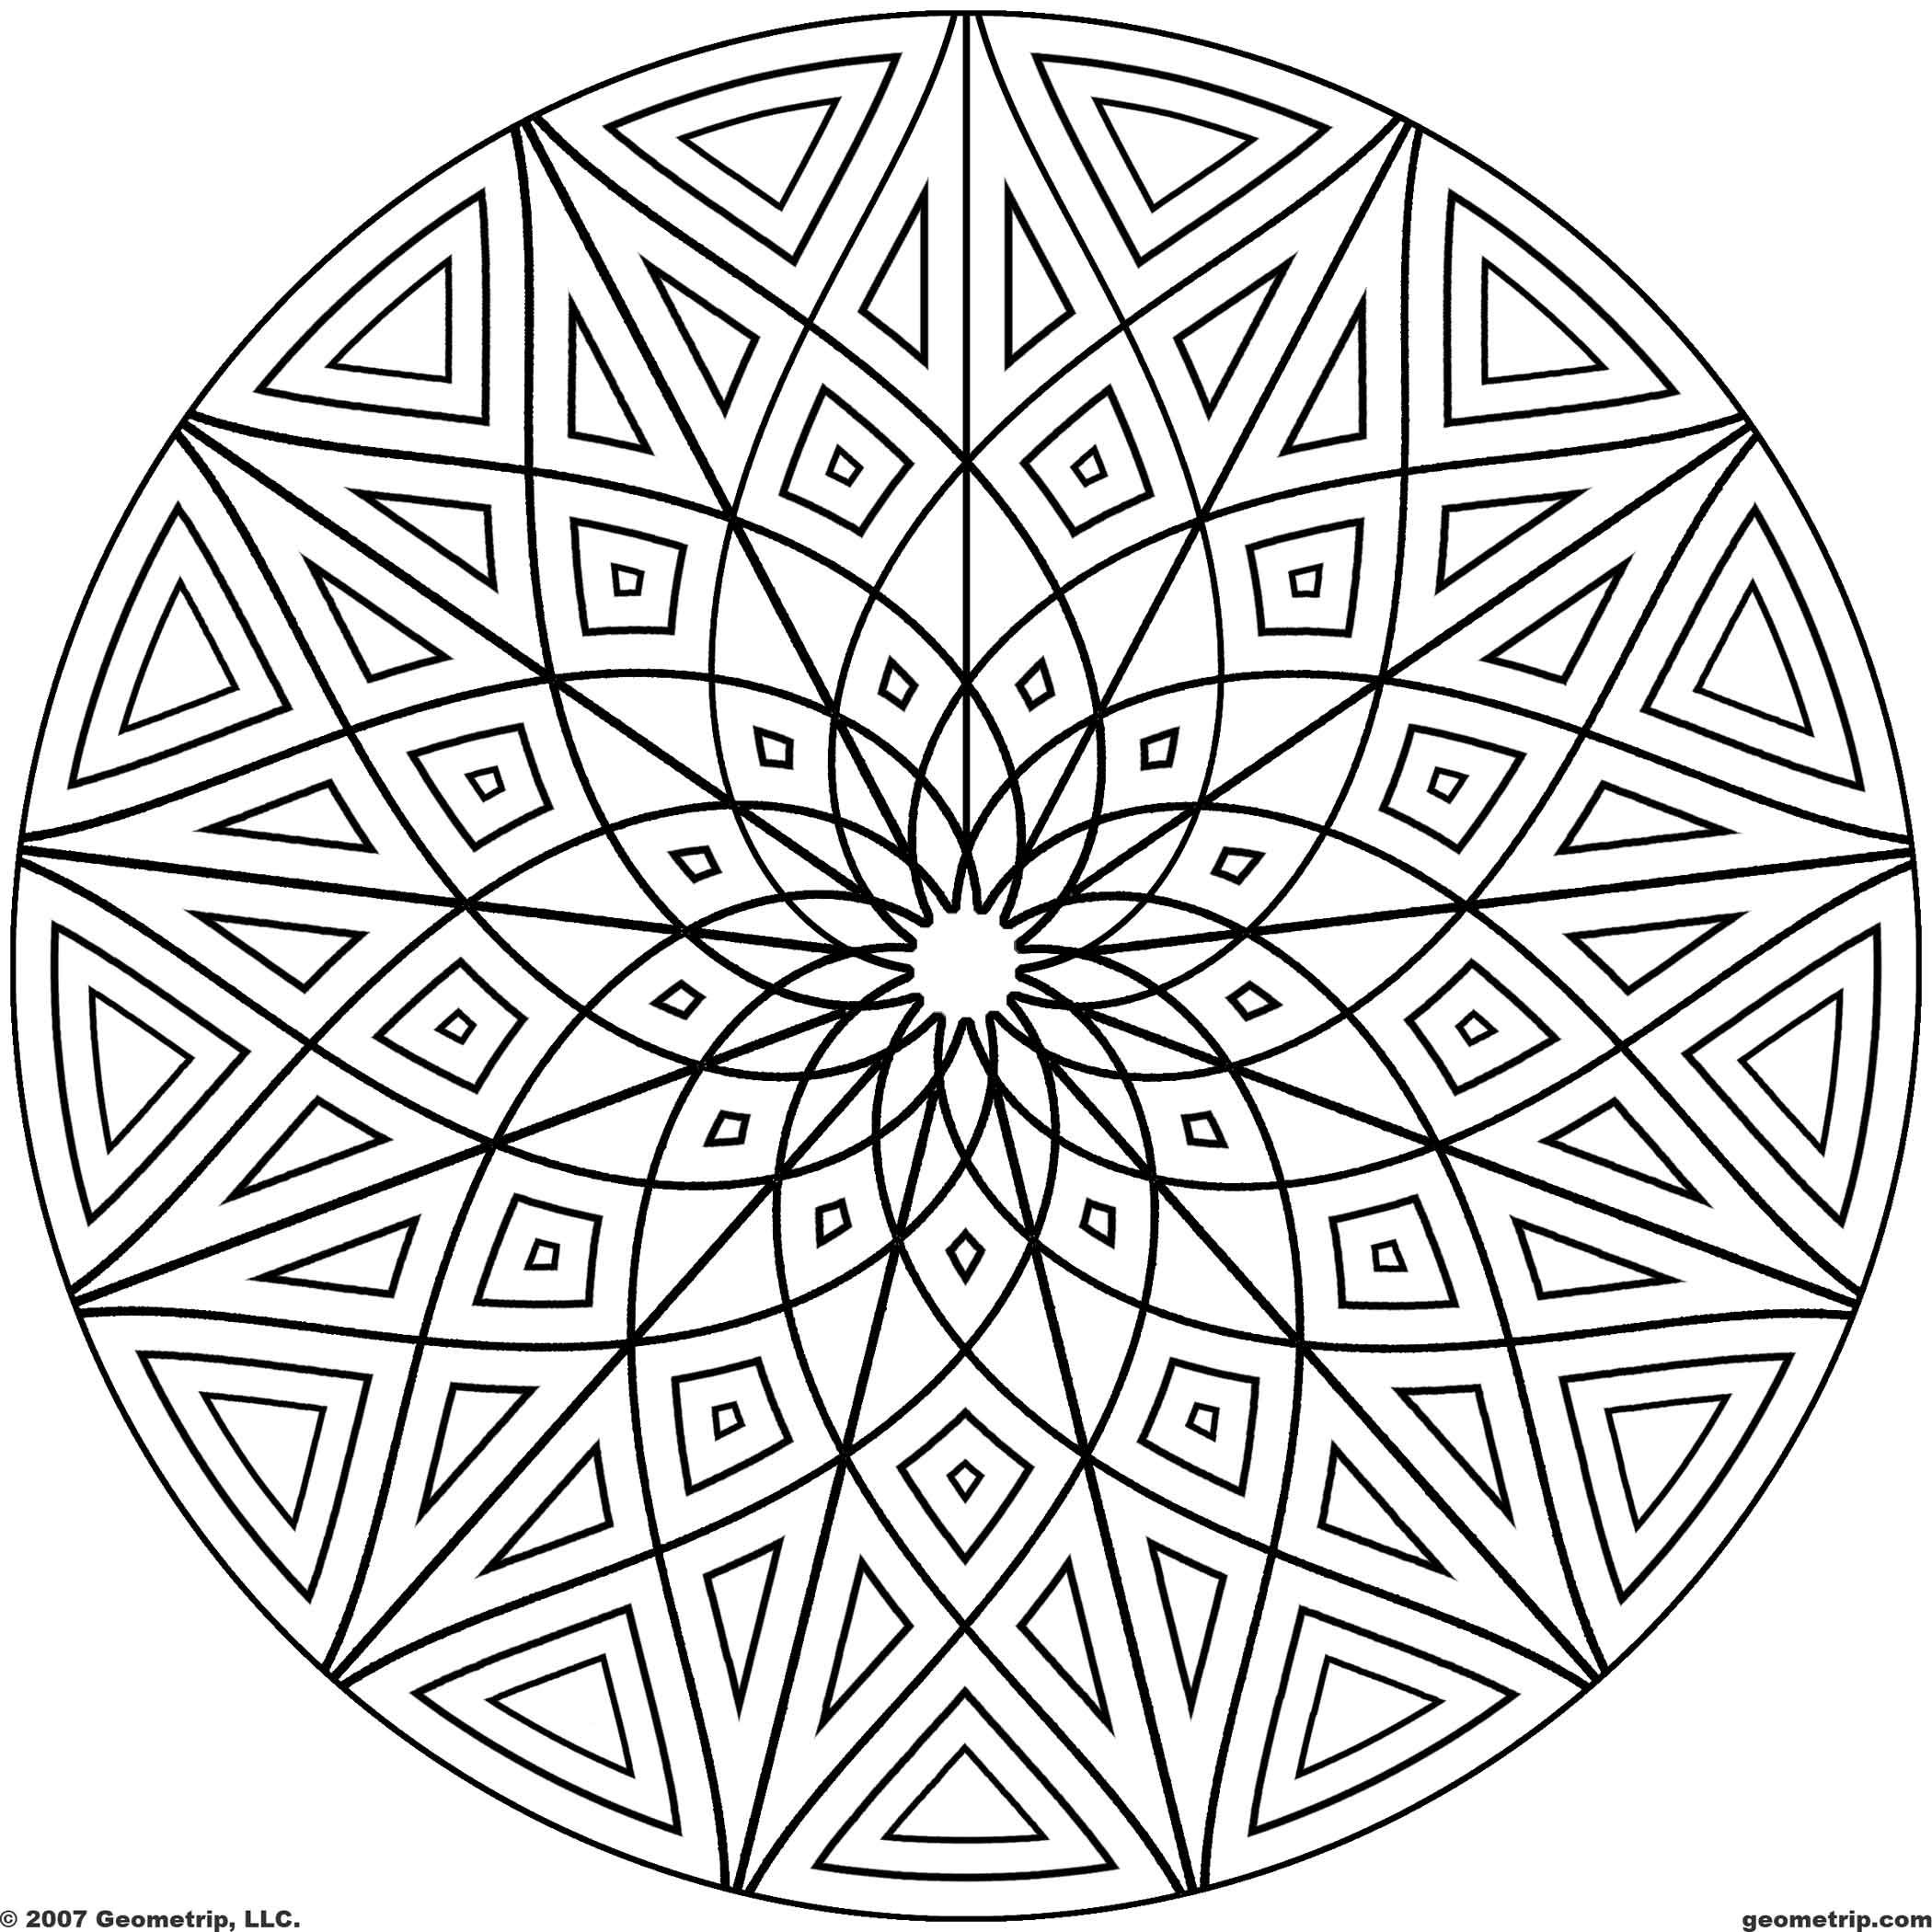 Download Or Print This Amazing Coloring Page Cool Patterns To Color Coloring Pag Geometric Patterns Coloring Geometric Coloring Pages Designs Coloring Books